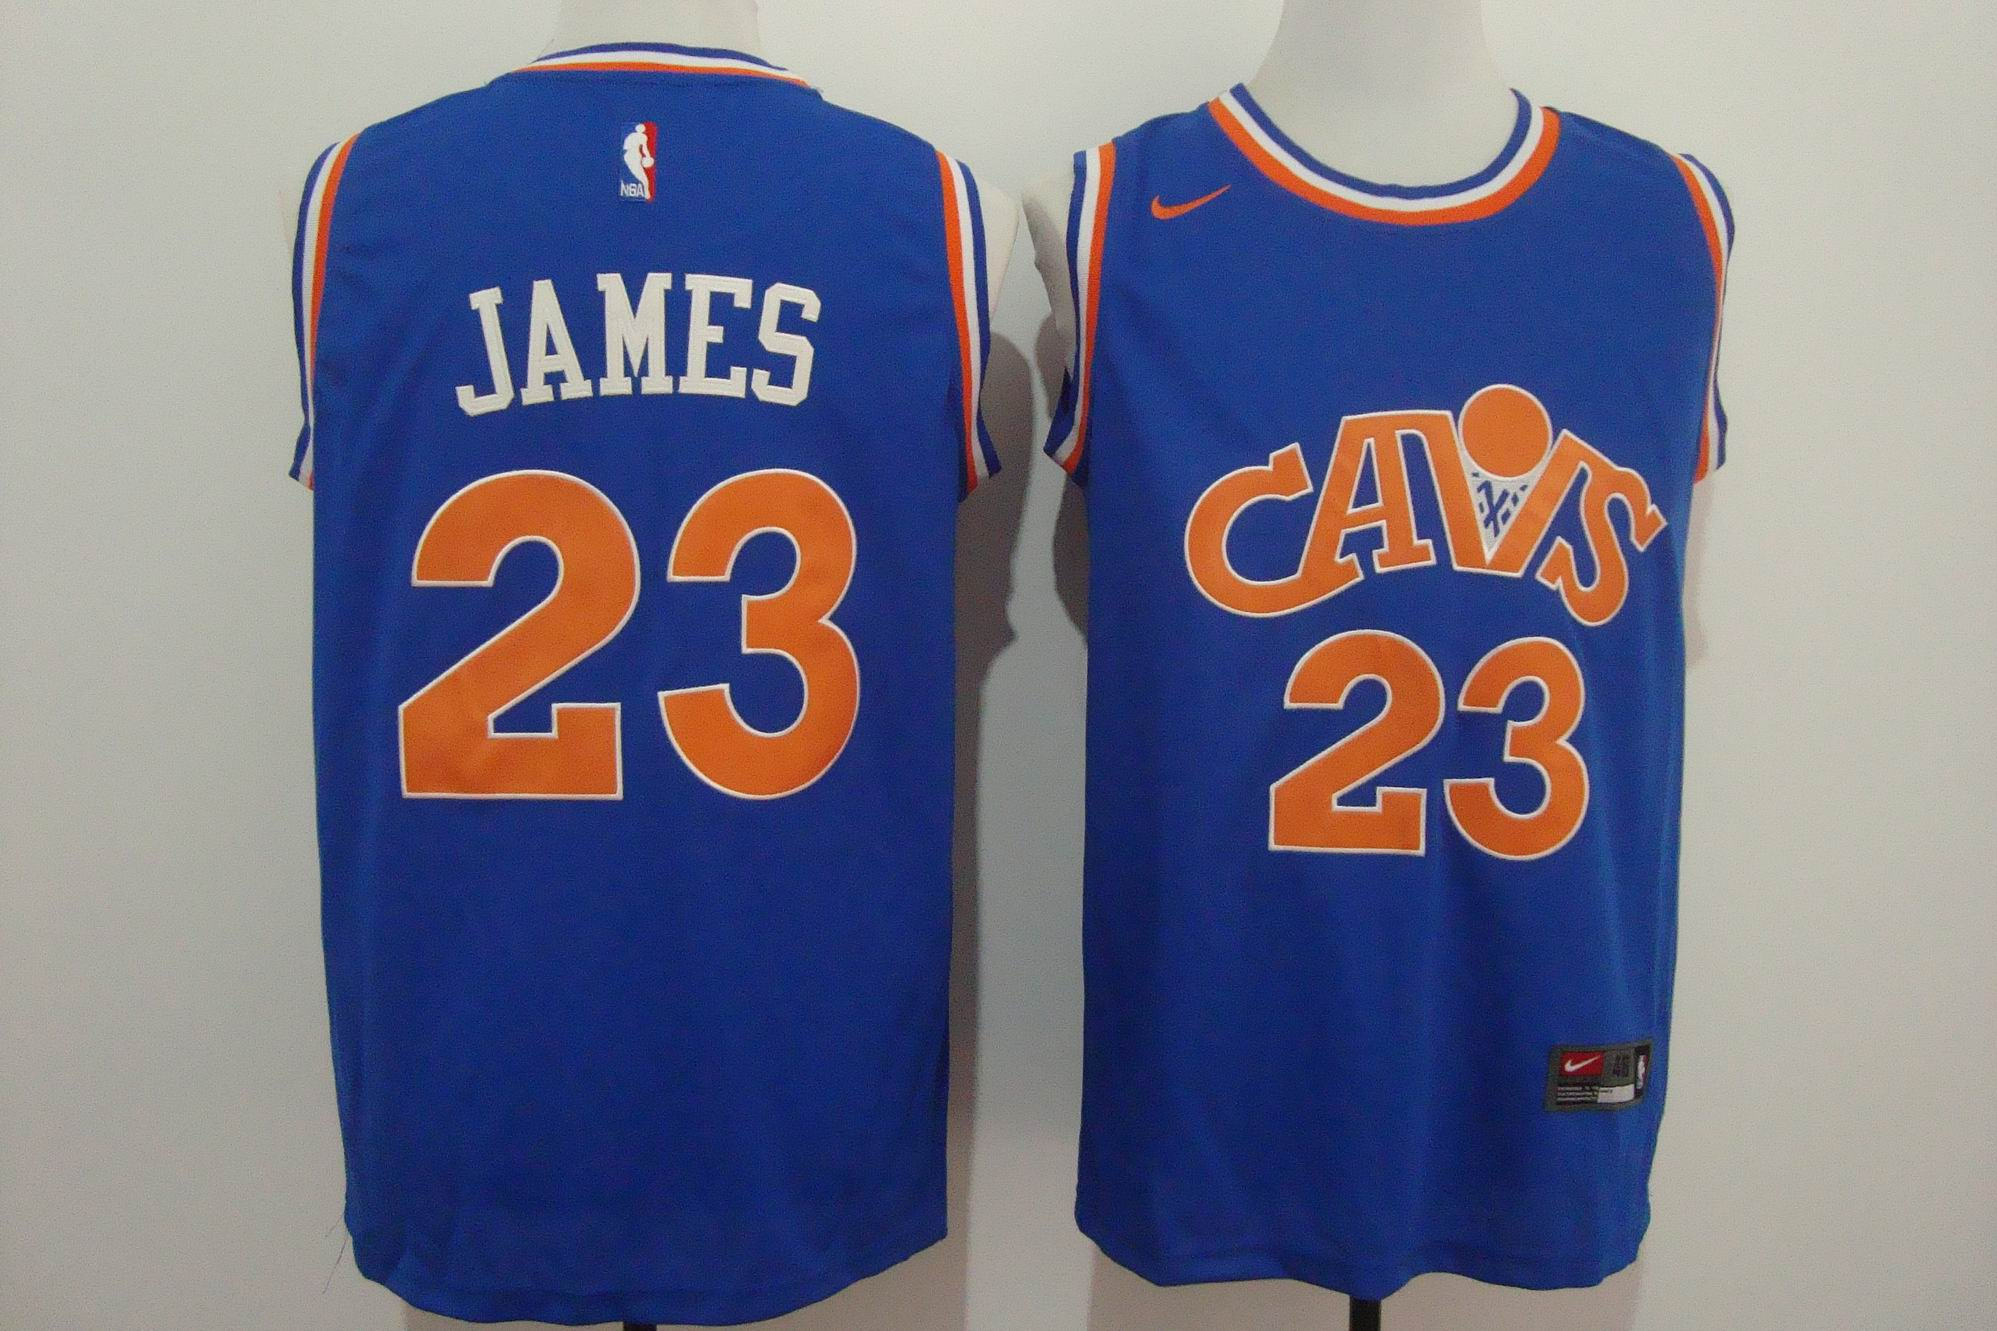 Men's Nike Cleveland Cavaliers #23 LeBron James Blue Stitched NBA Jersey